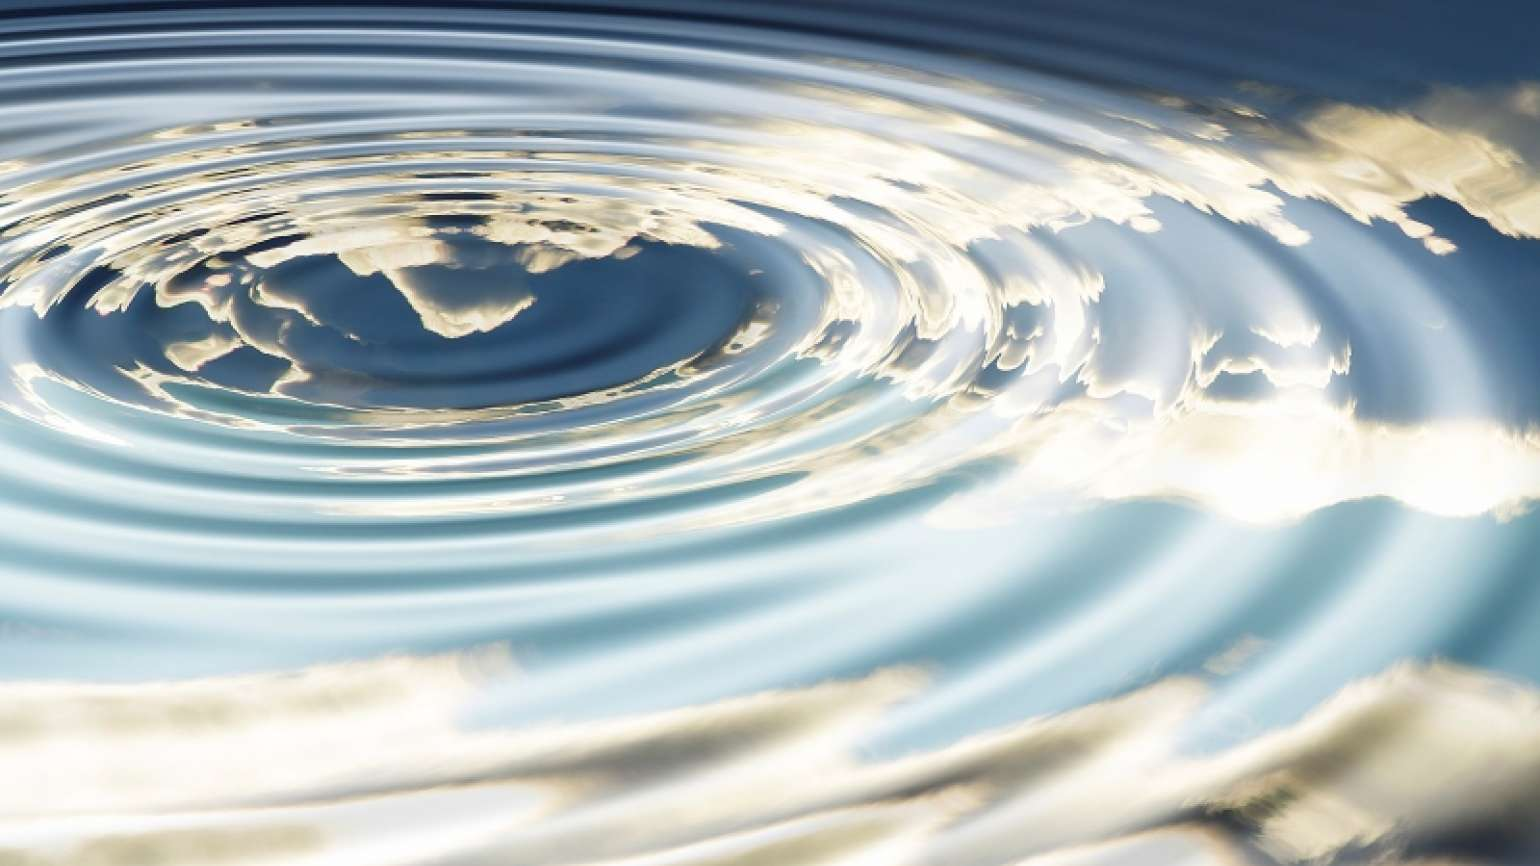 Water ripples with a sky scene